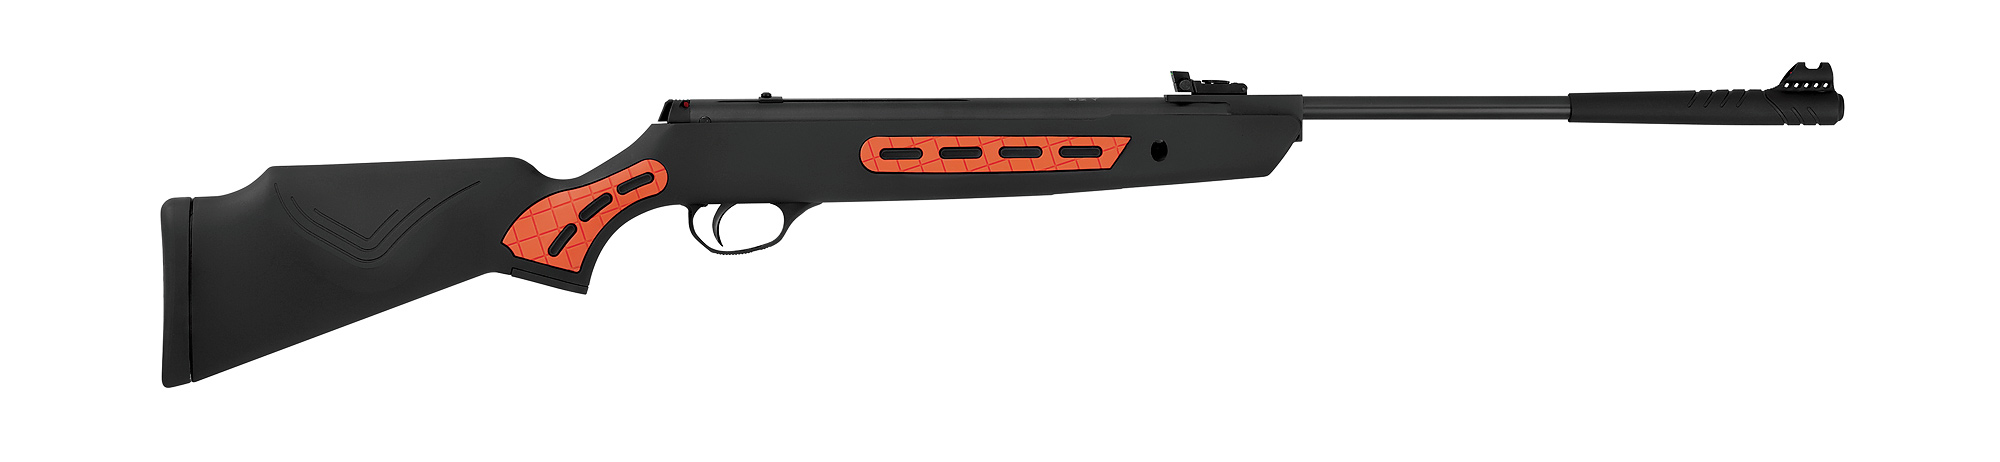 Hatsan Striker S 55mm